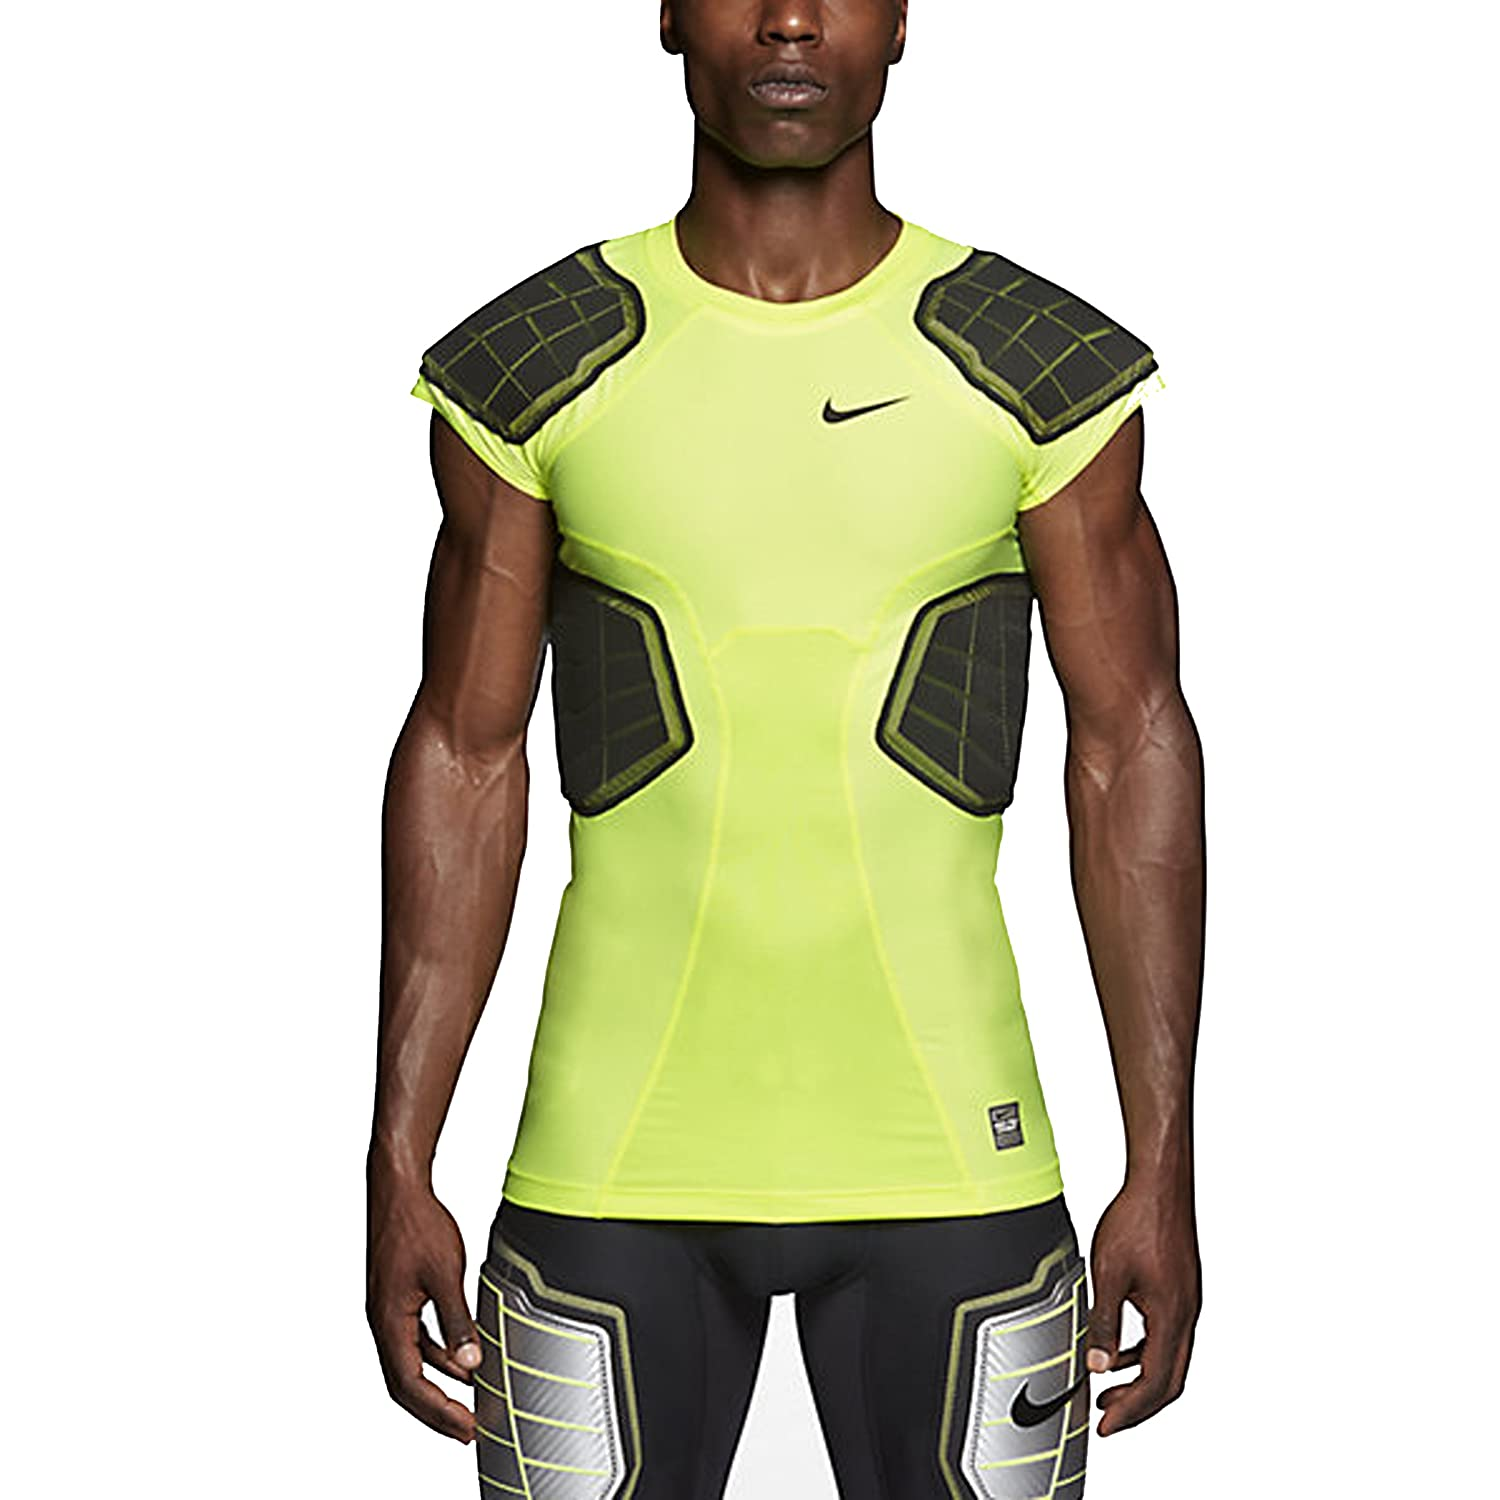 Amazon.com: Nike Men's Hyperstrong 4-Pad Protective Shirt: Sports & Outdoors